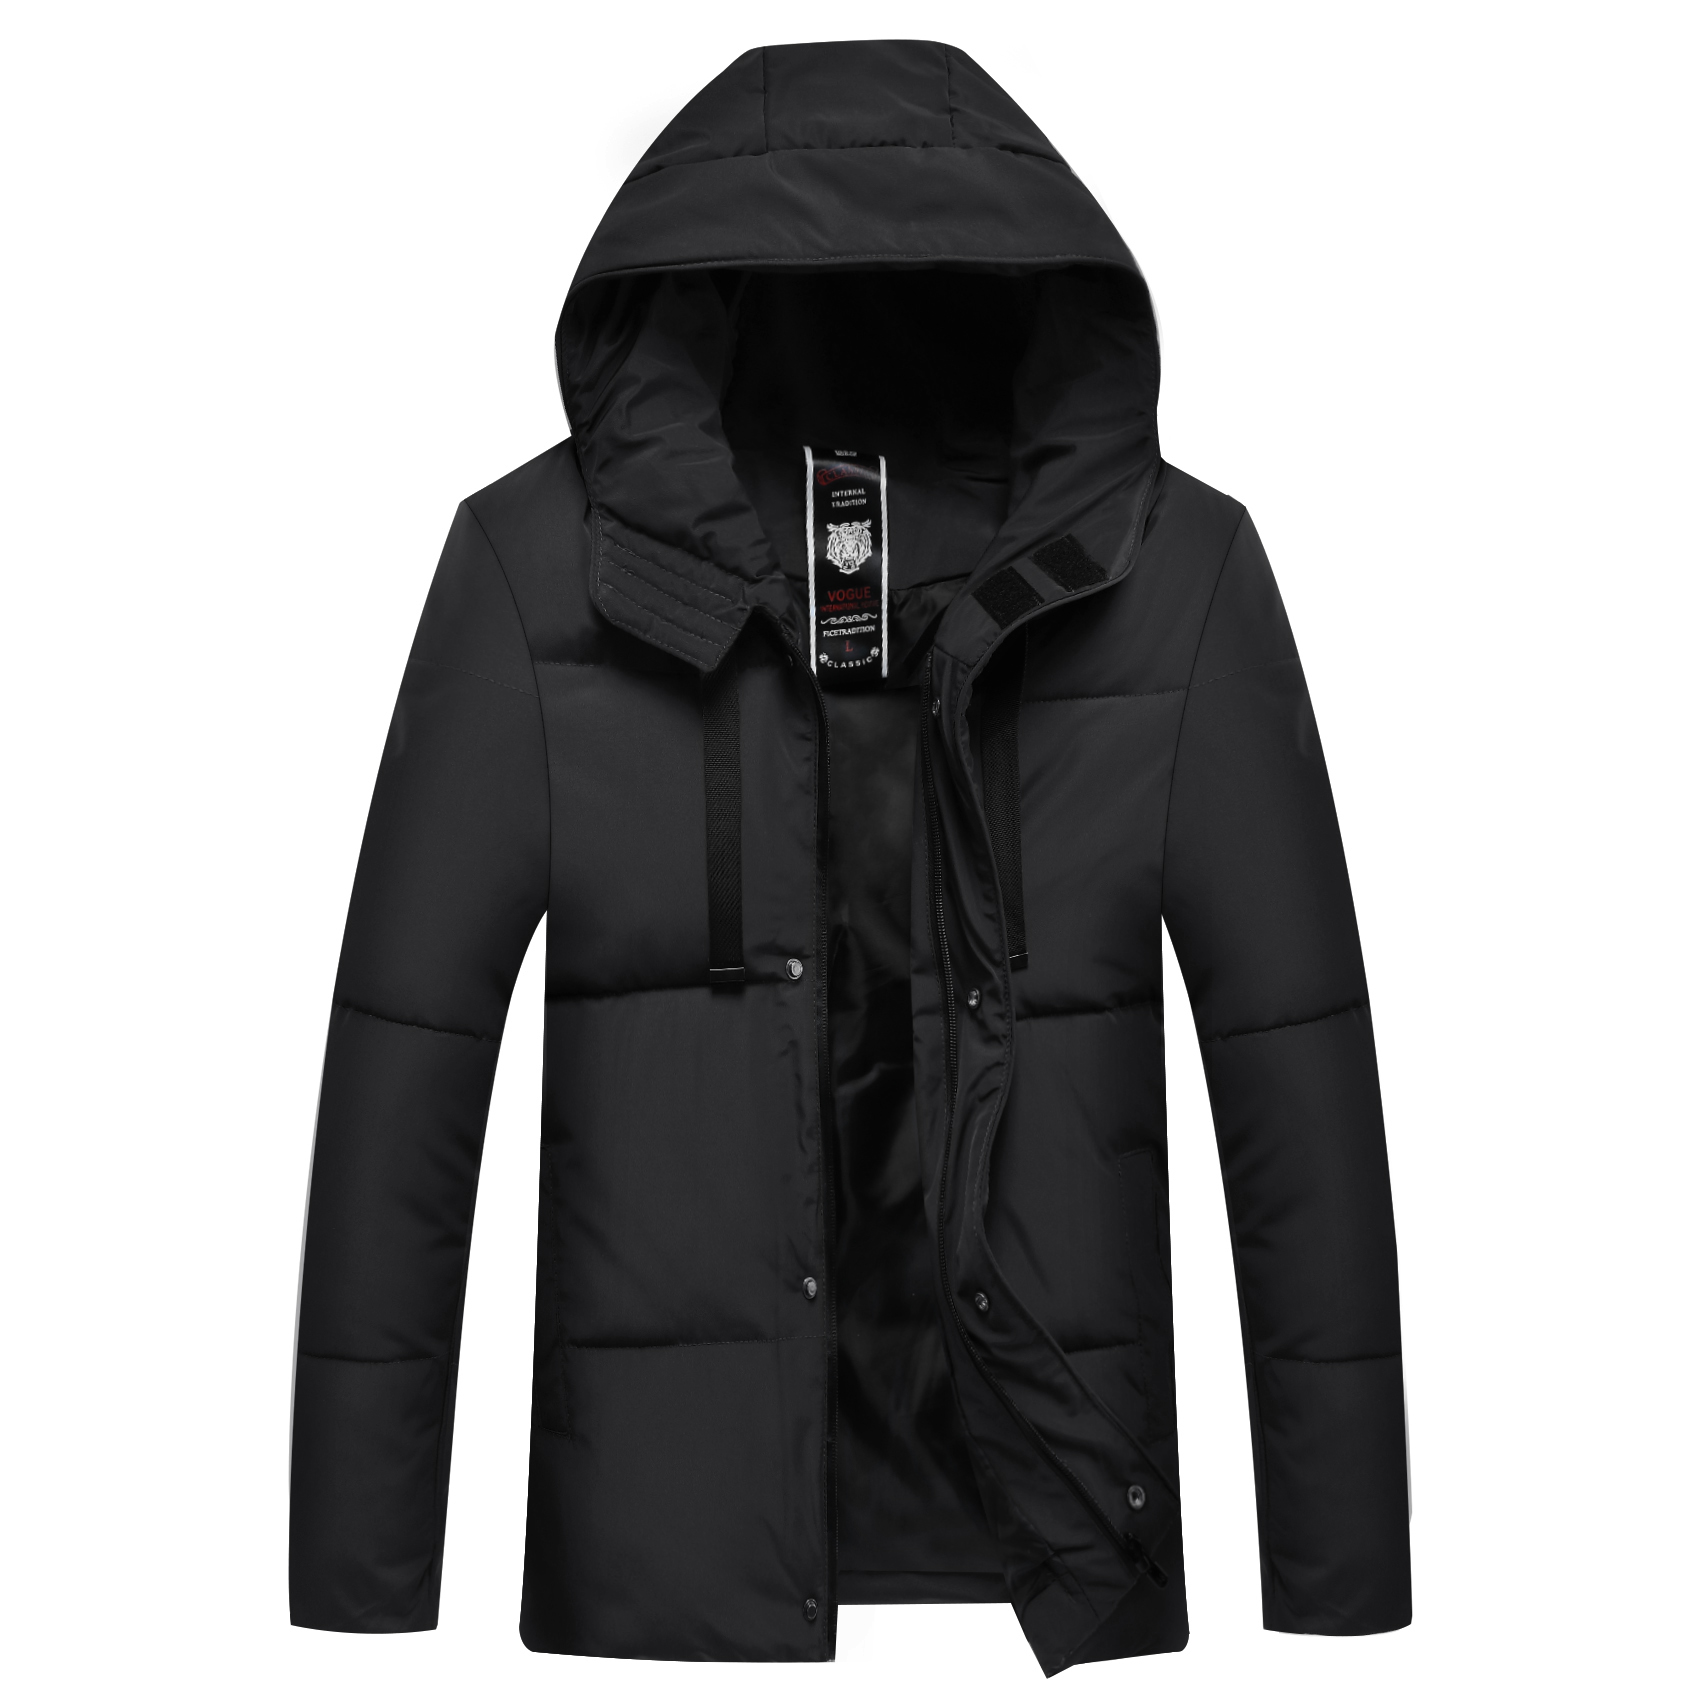 Winter Men's Cotton Garment Business Leisure Warming And Thickening Men's Jacket Men Jacket Winter Mens Winter Jackets And Coat